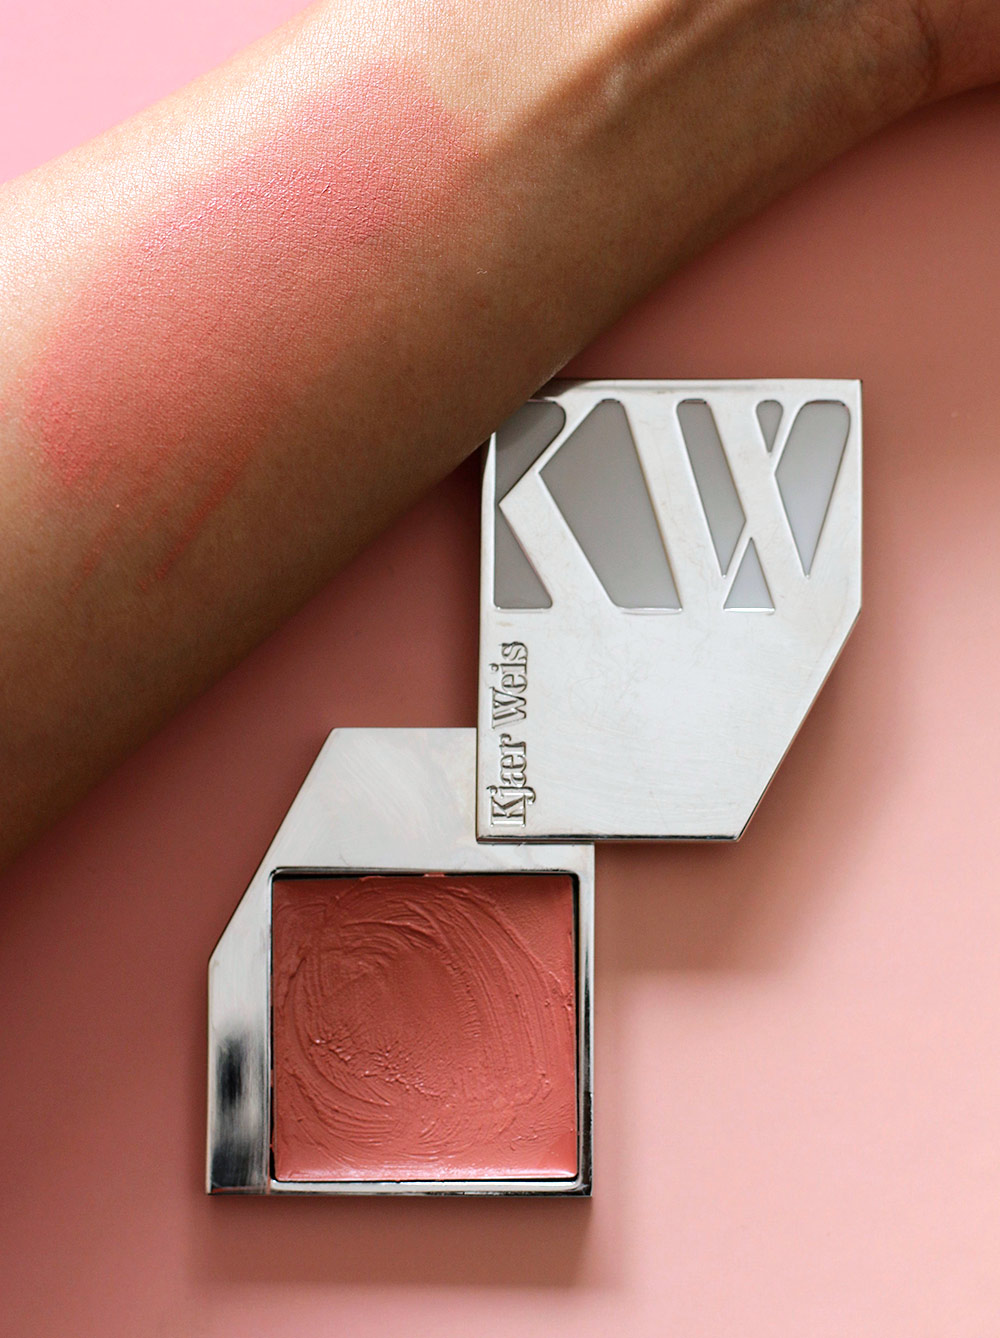 Kjaer Weis Sun Touched Blush Swatch